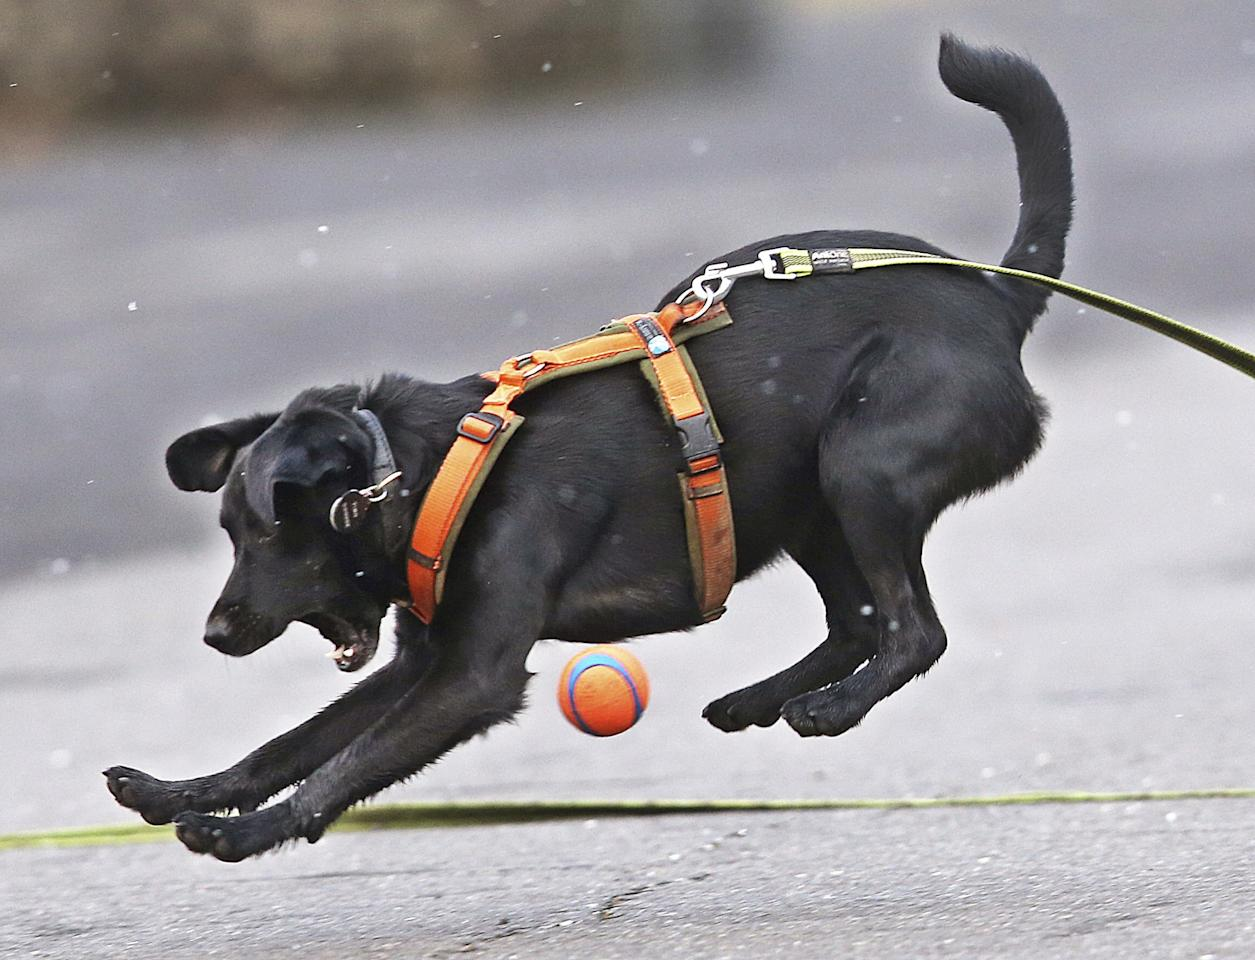 <p></p><p>Mixed-breed dog Tino, a former street dog from Slovakia whose owner got him from a Frankfurt dog pound, just misses as he jumps for a ball in Frankfurt. (AP Photo/Michael Probst) </p><p></p>